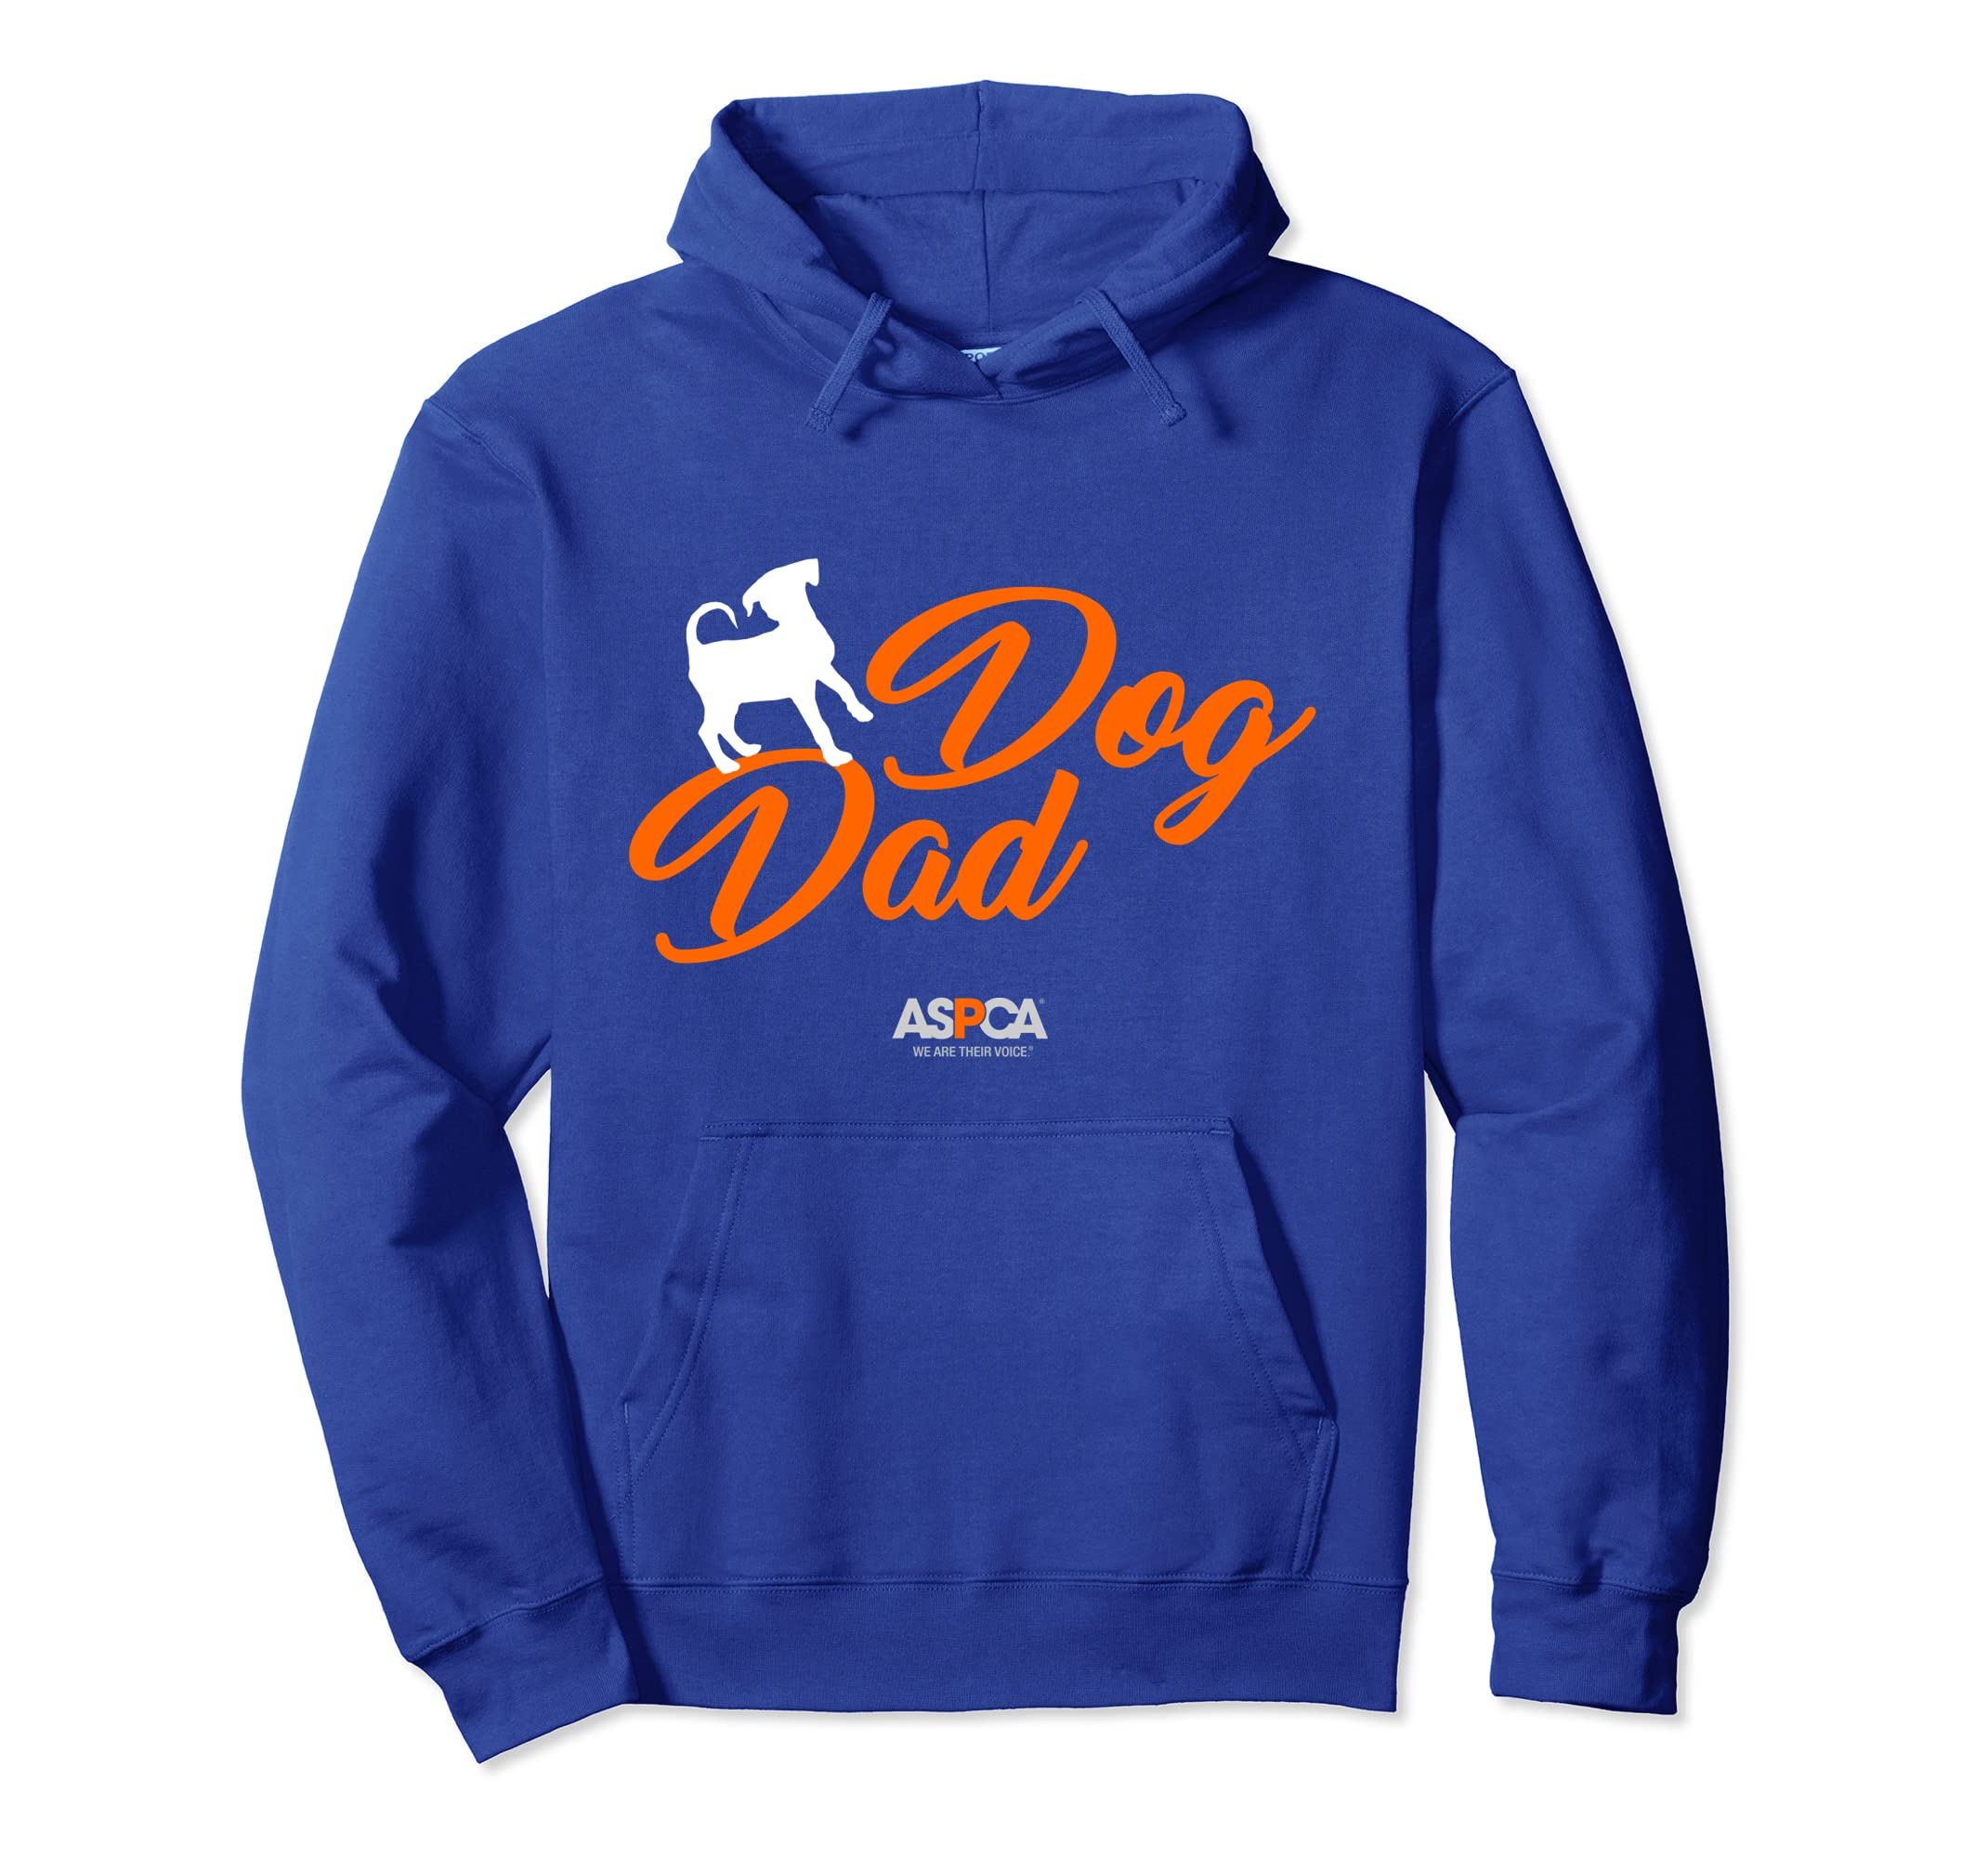 fddb91766d Amazon.com  ASPCA Dog Dad Hoodie  Clothing